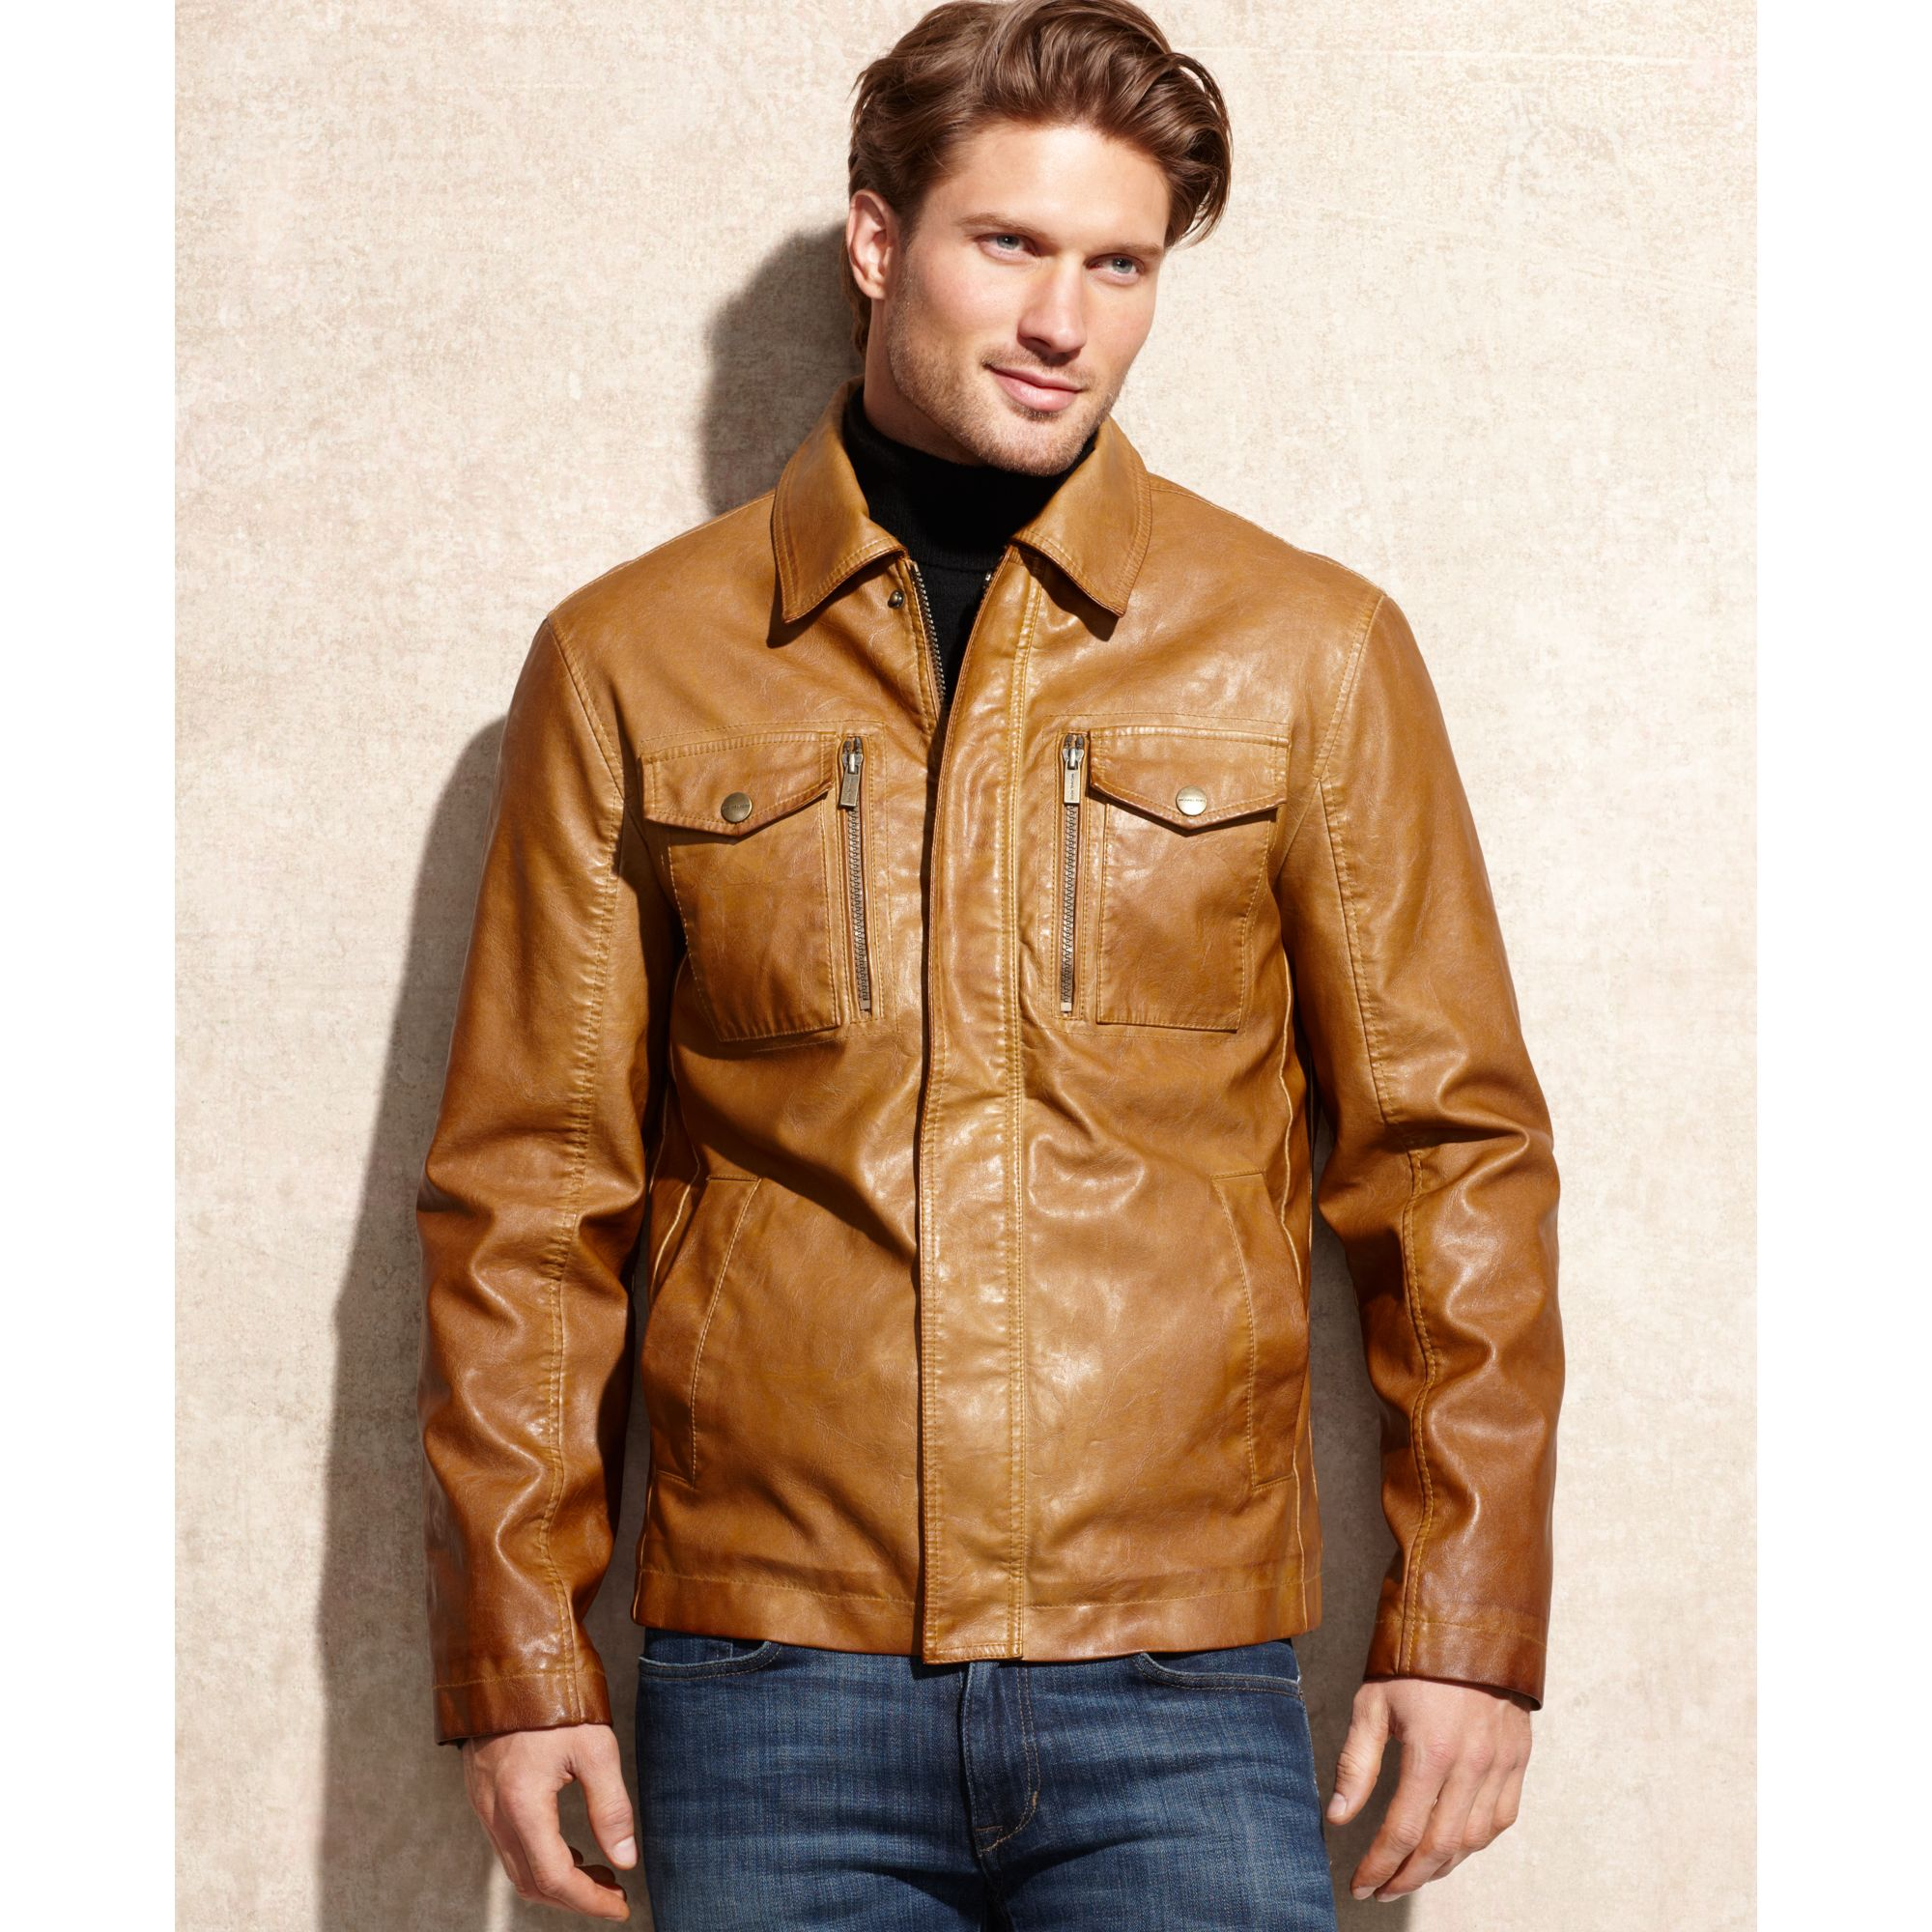 Michael Kors Houston Faux Leather Jacket In Brown For Men